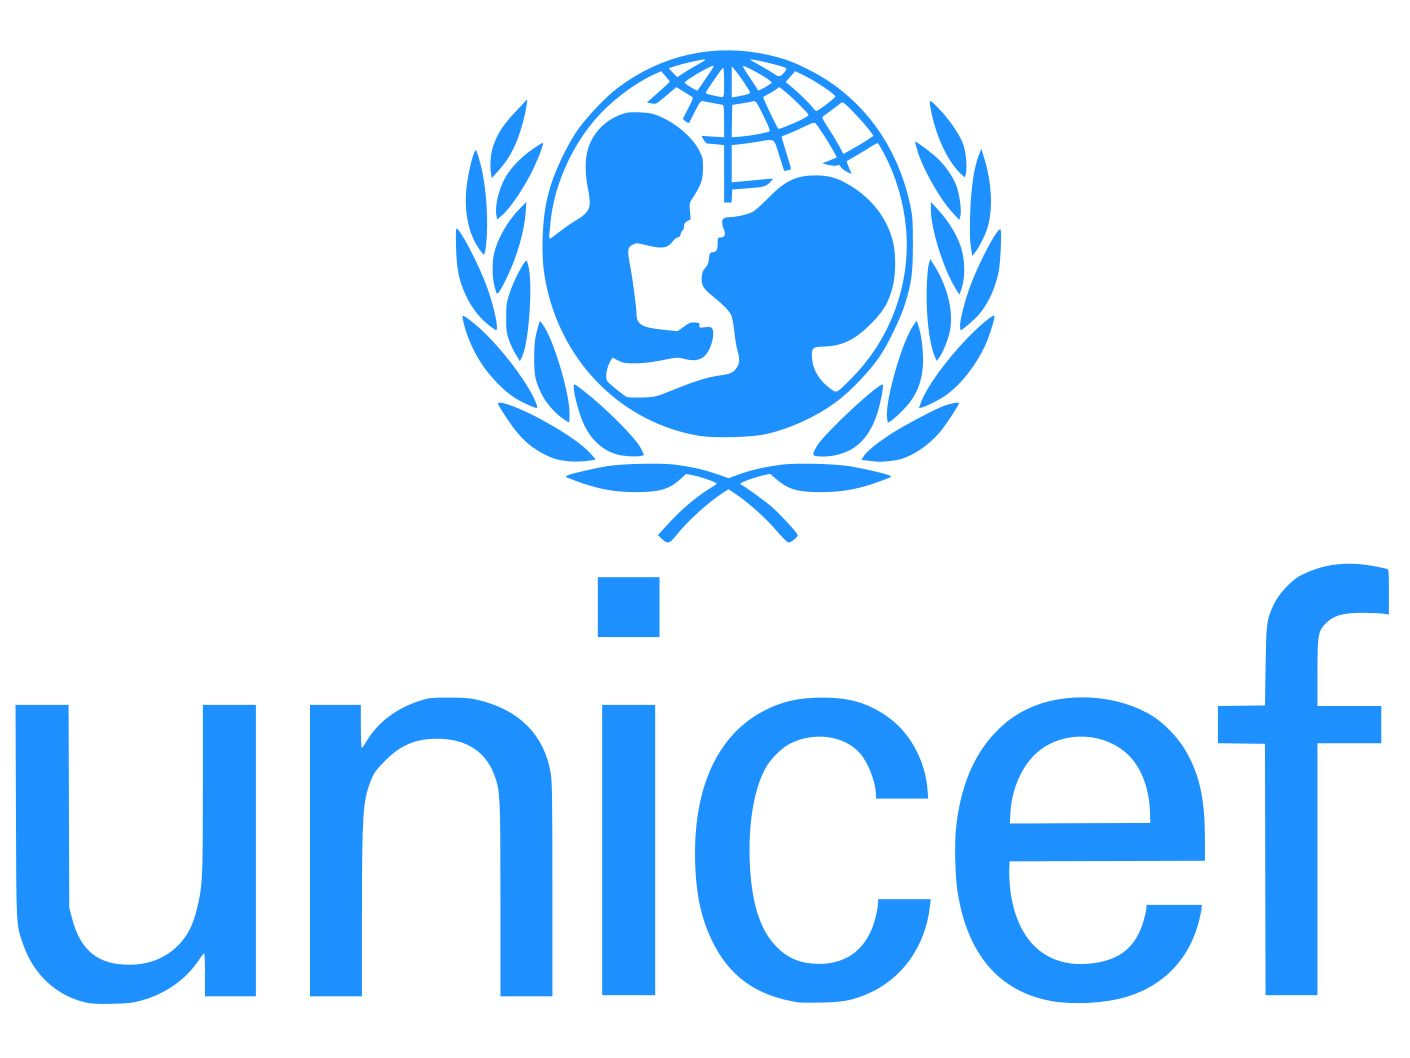 UNICEF Logo - UNICEF Logo, United Nations Children's Fund symbol